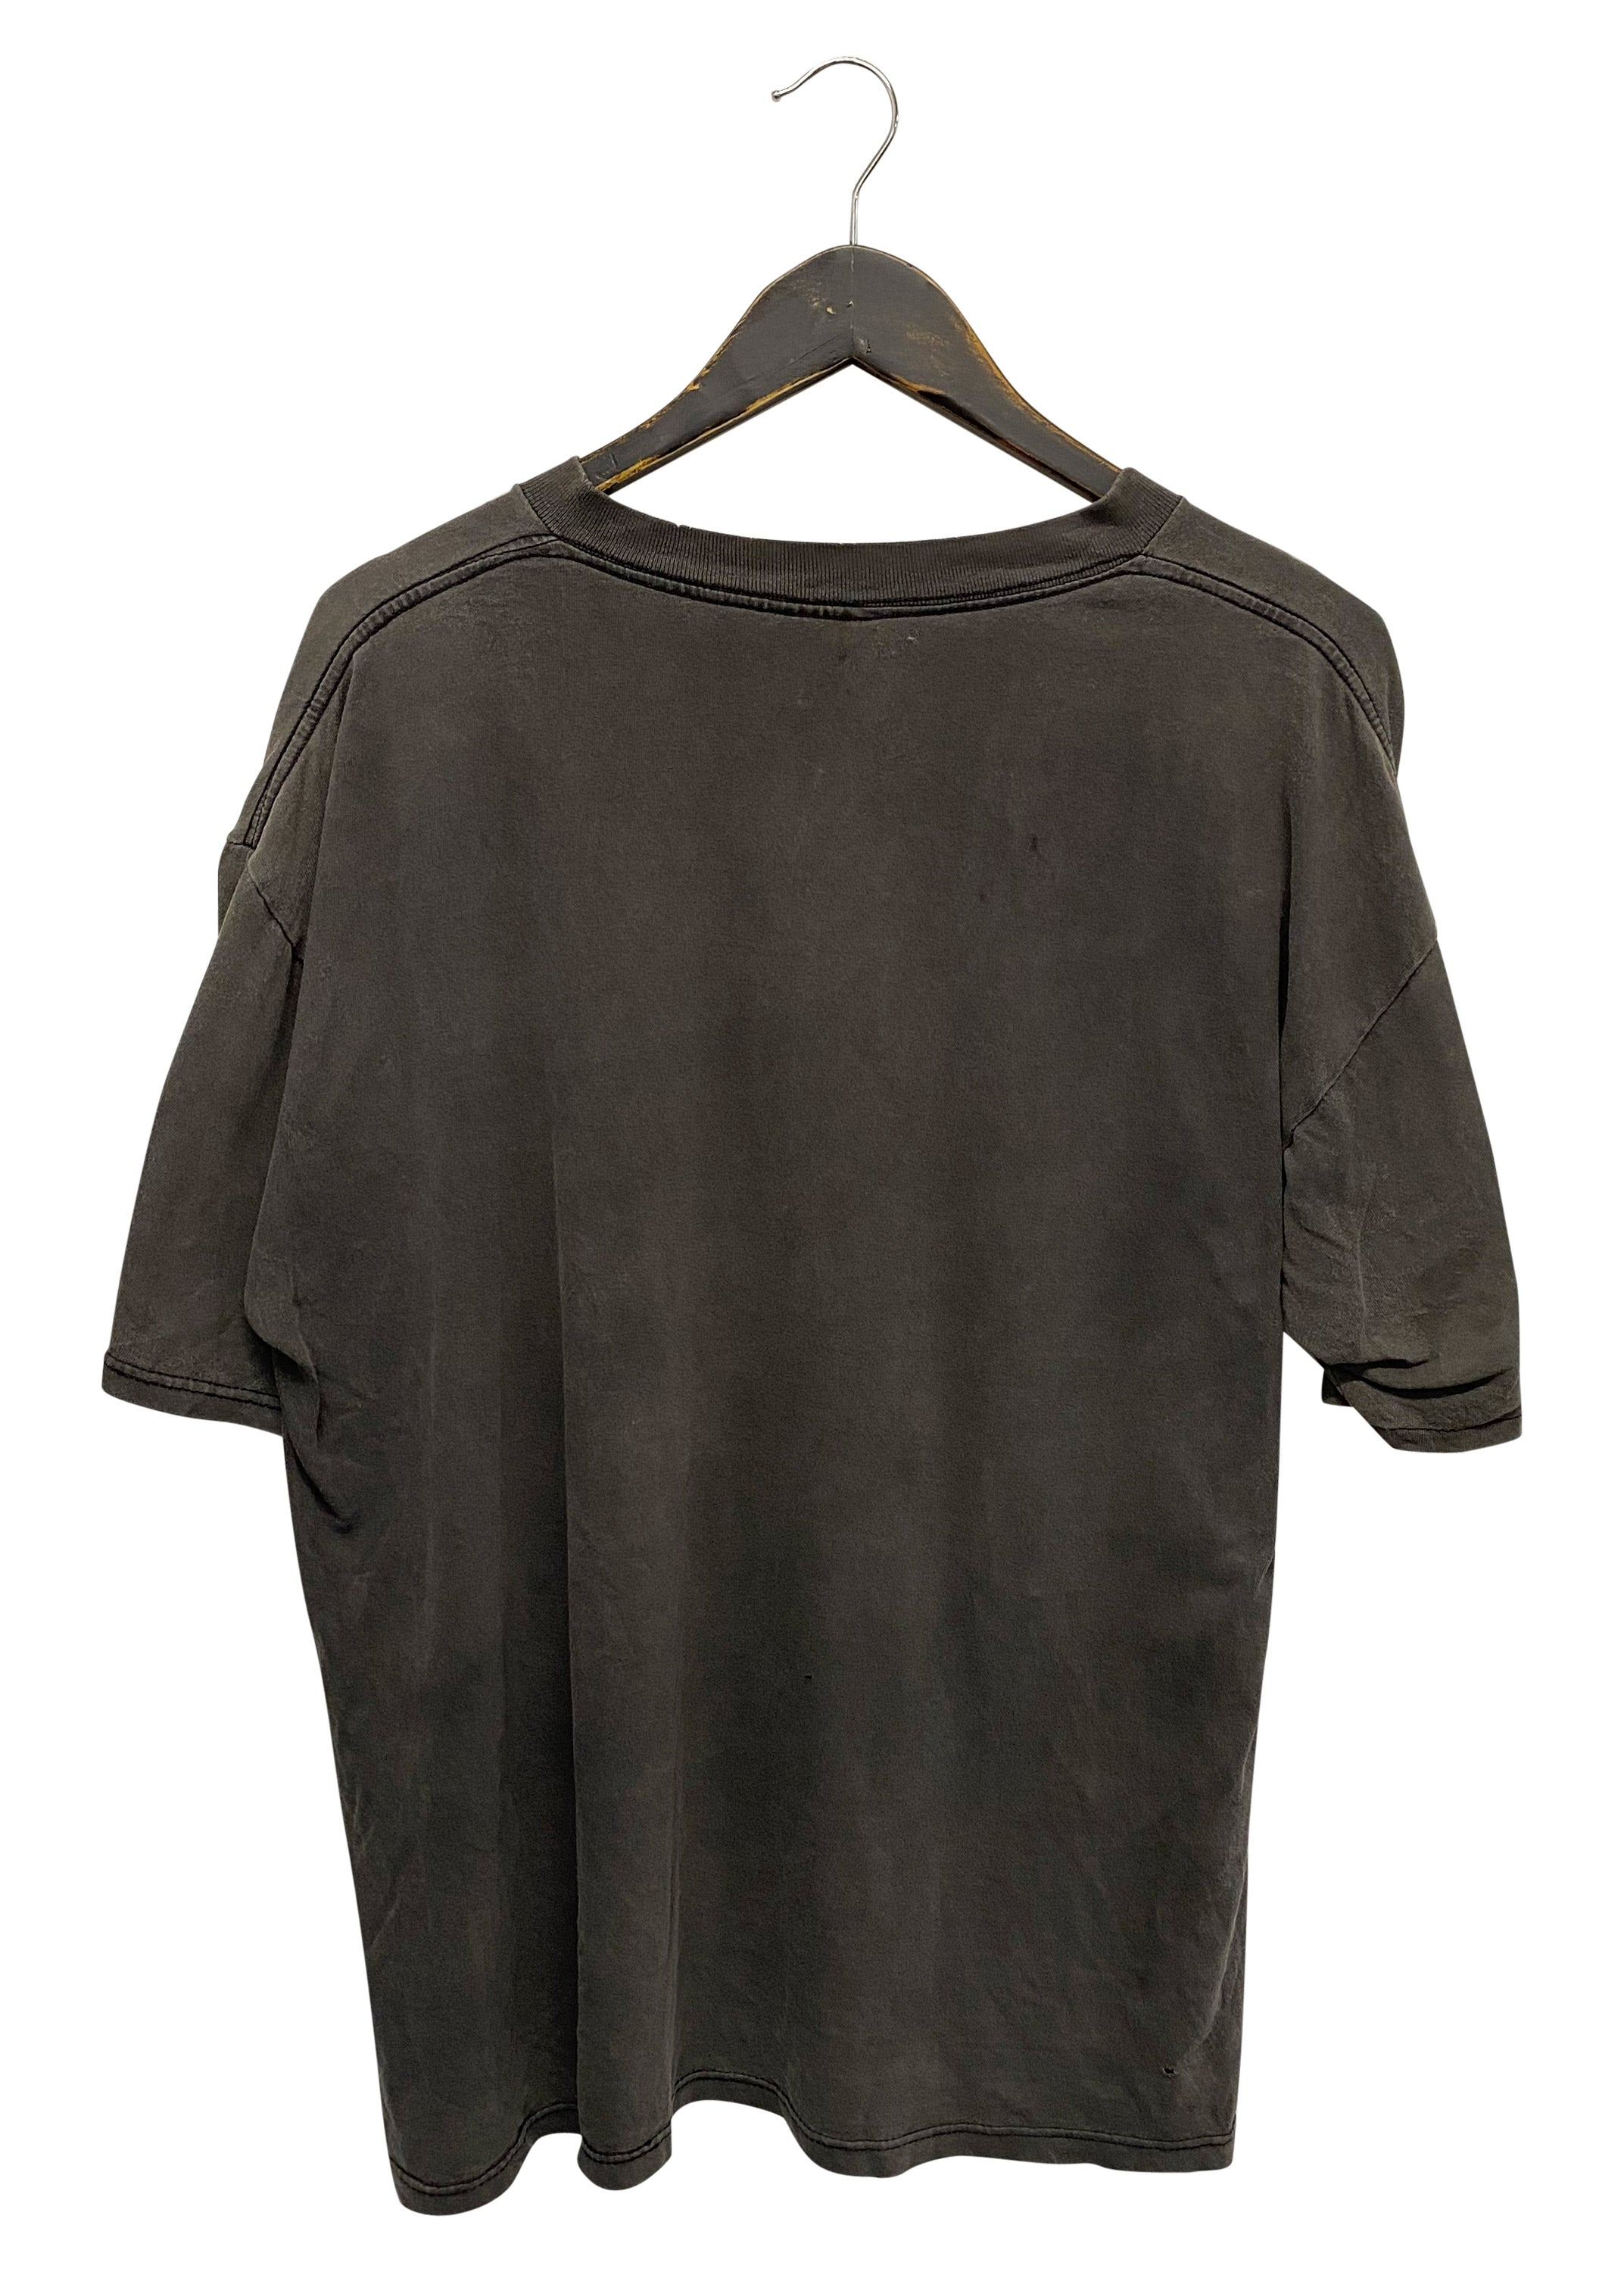 KISS 'HEADSHOT' VINTAGE TEE